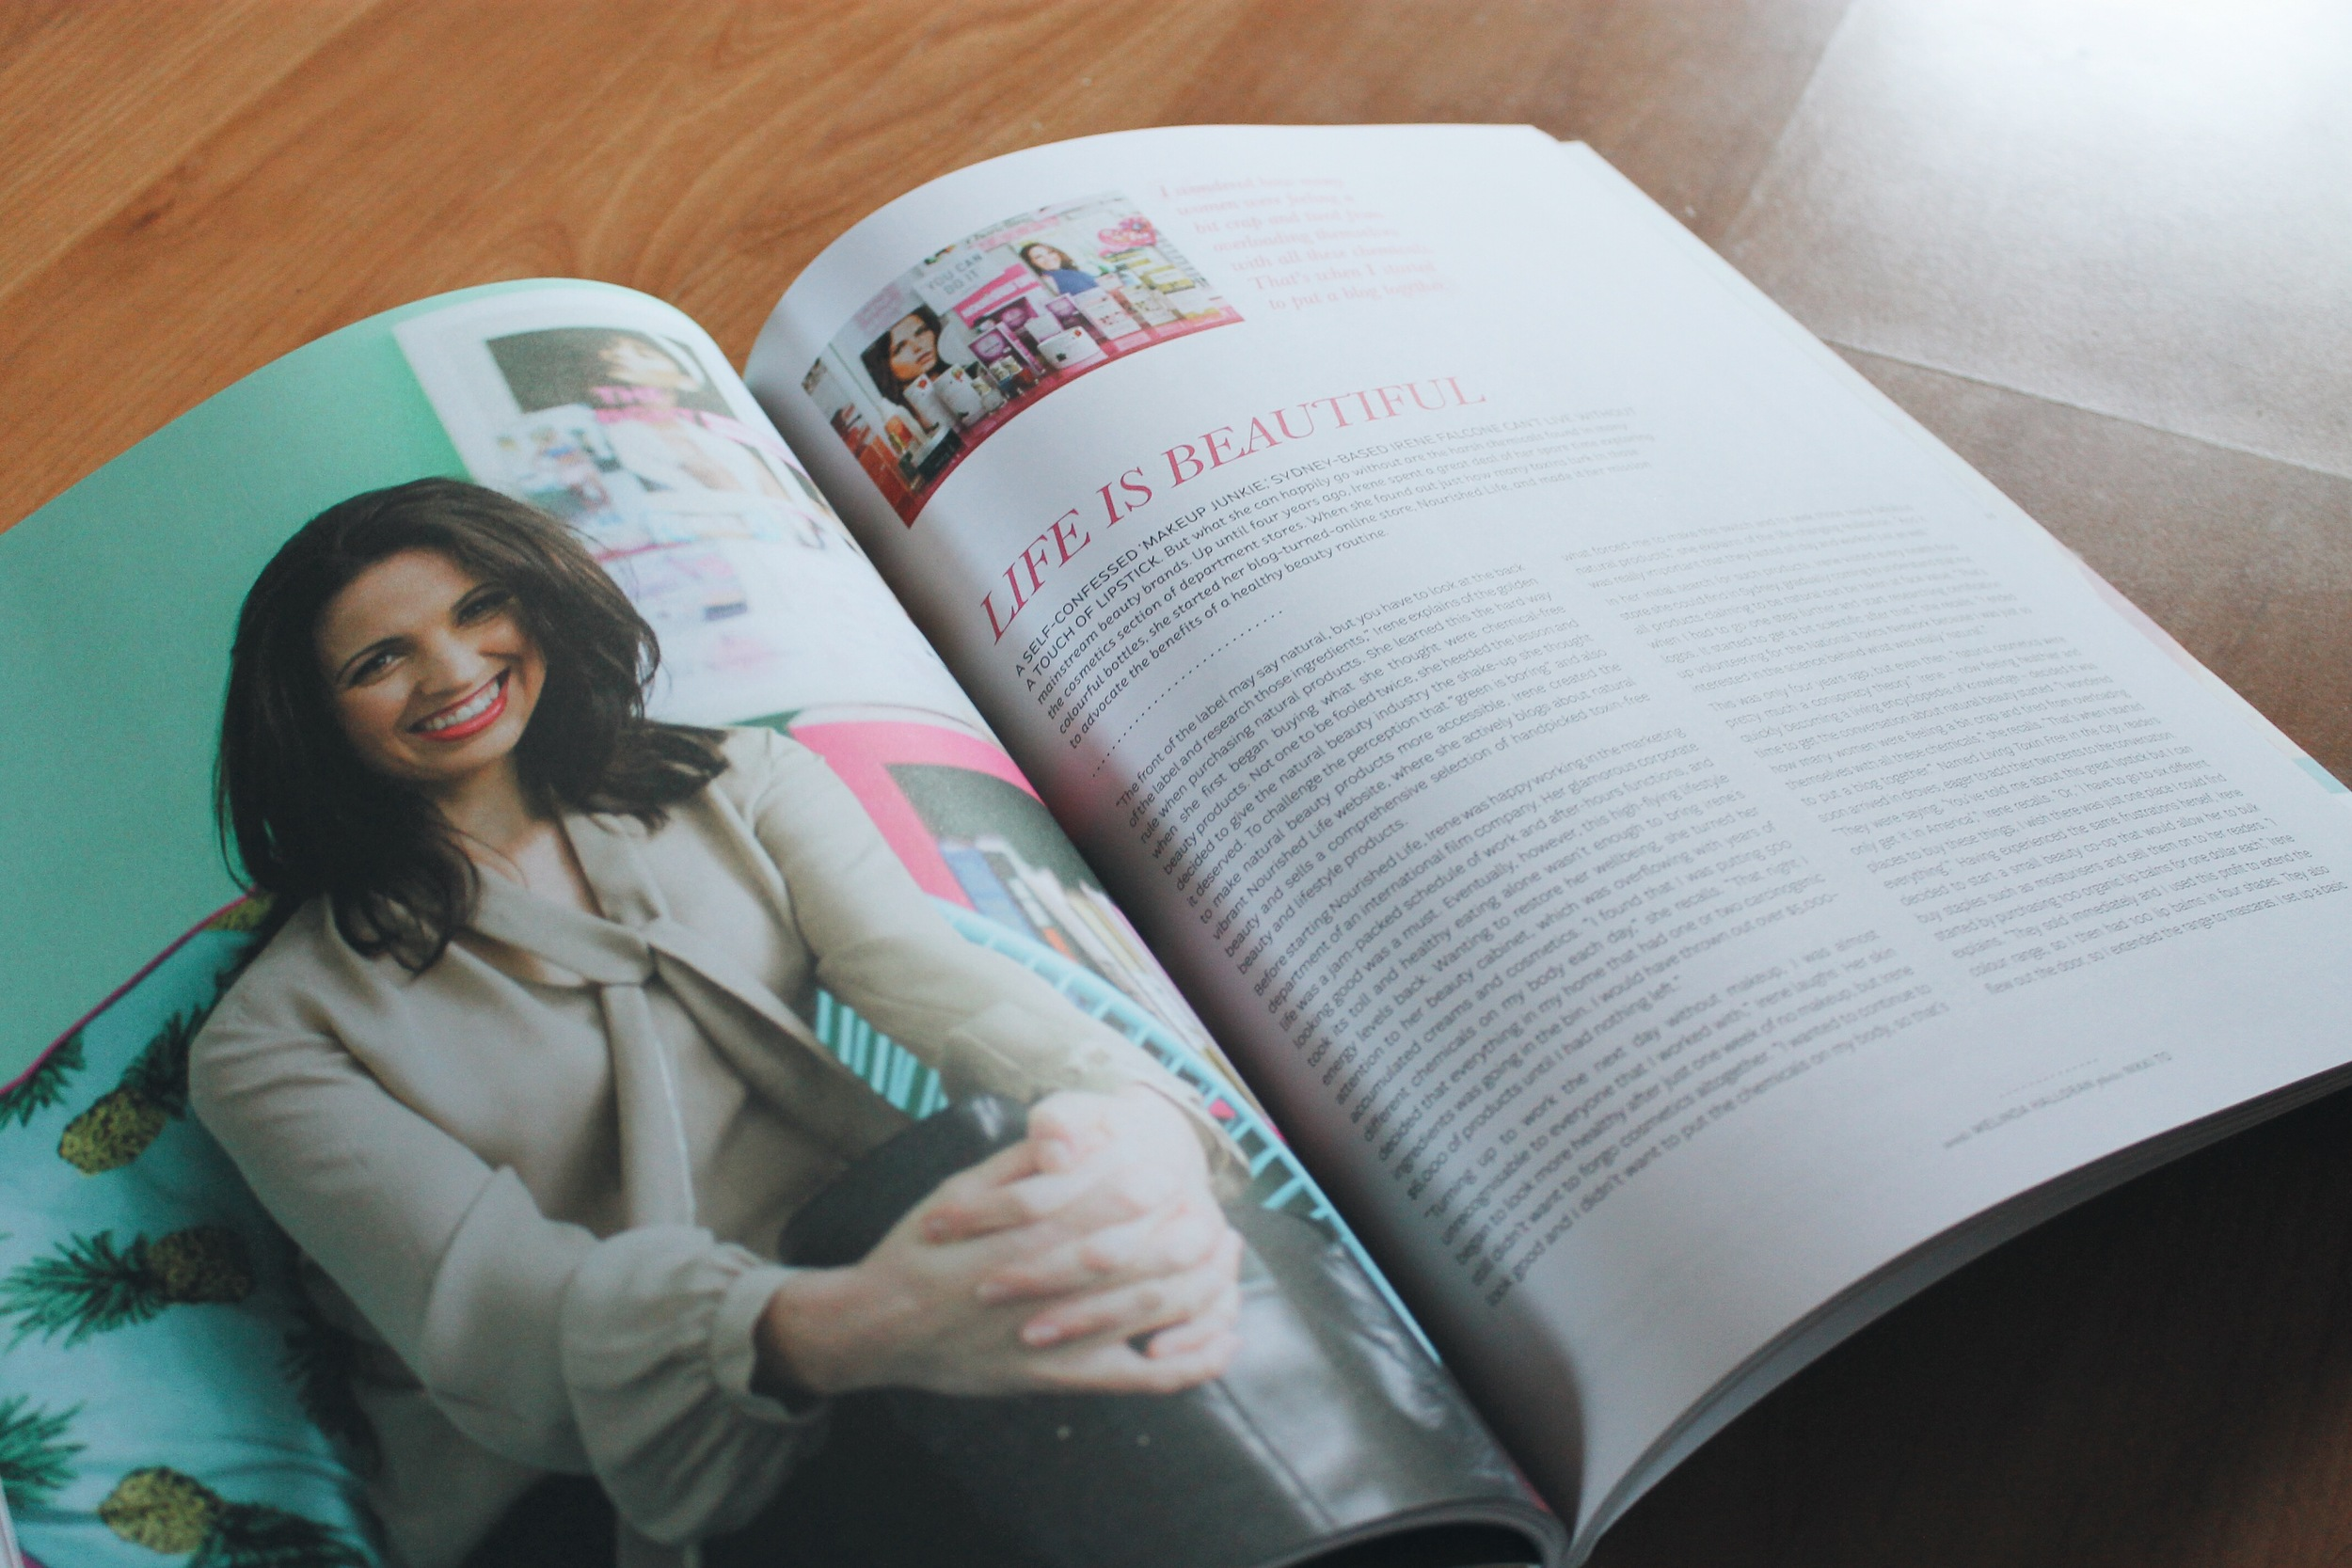 Peppermint Magazine by Melinda Halloran